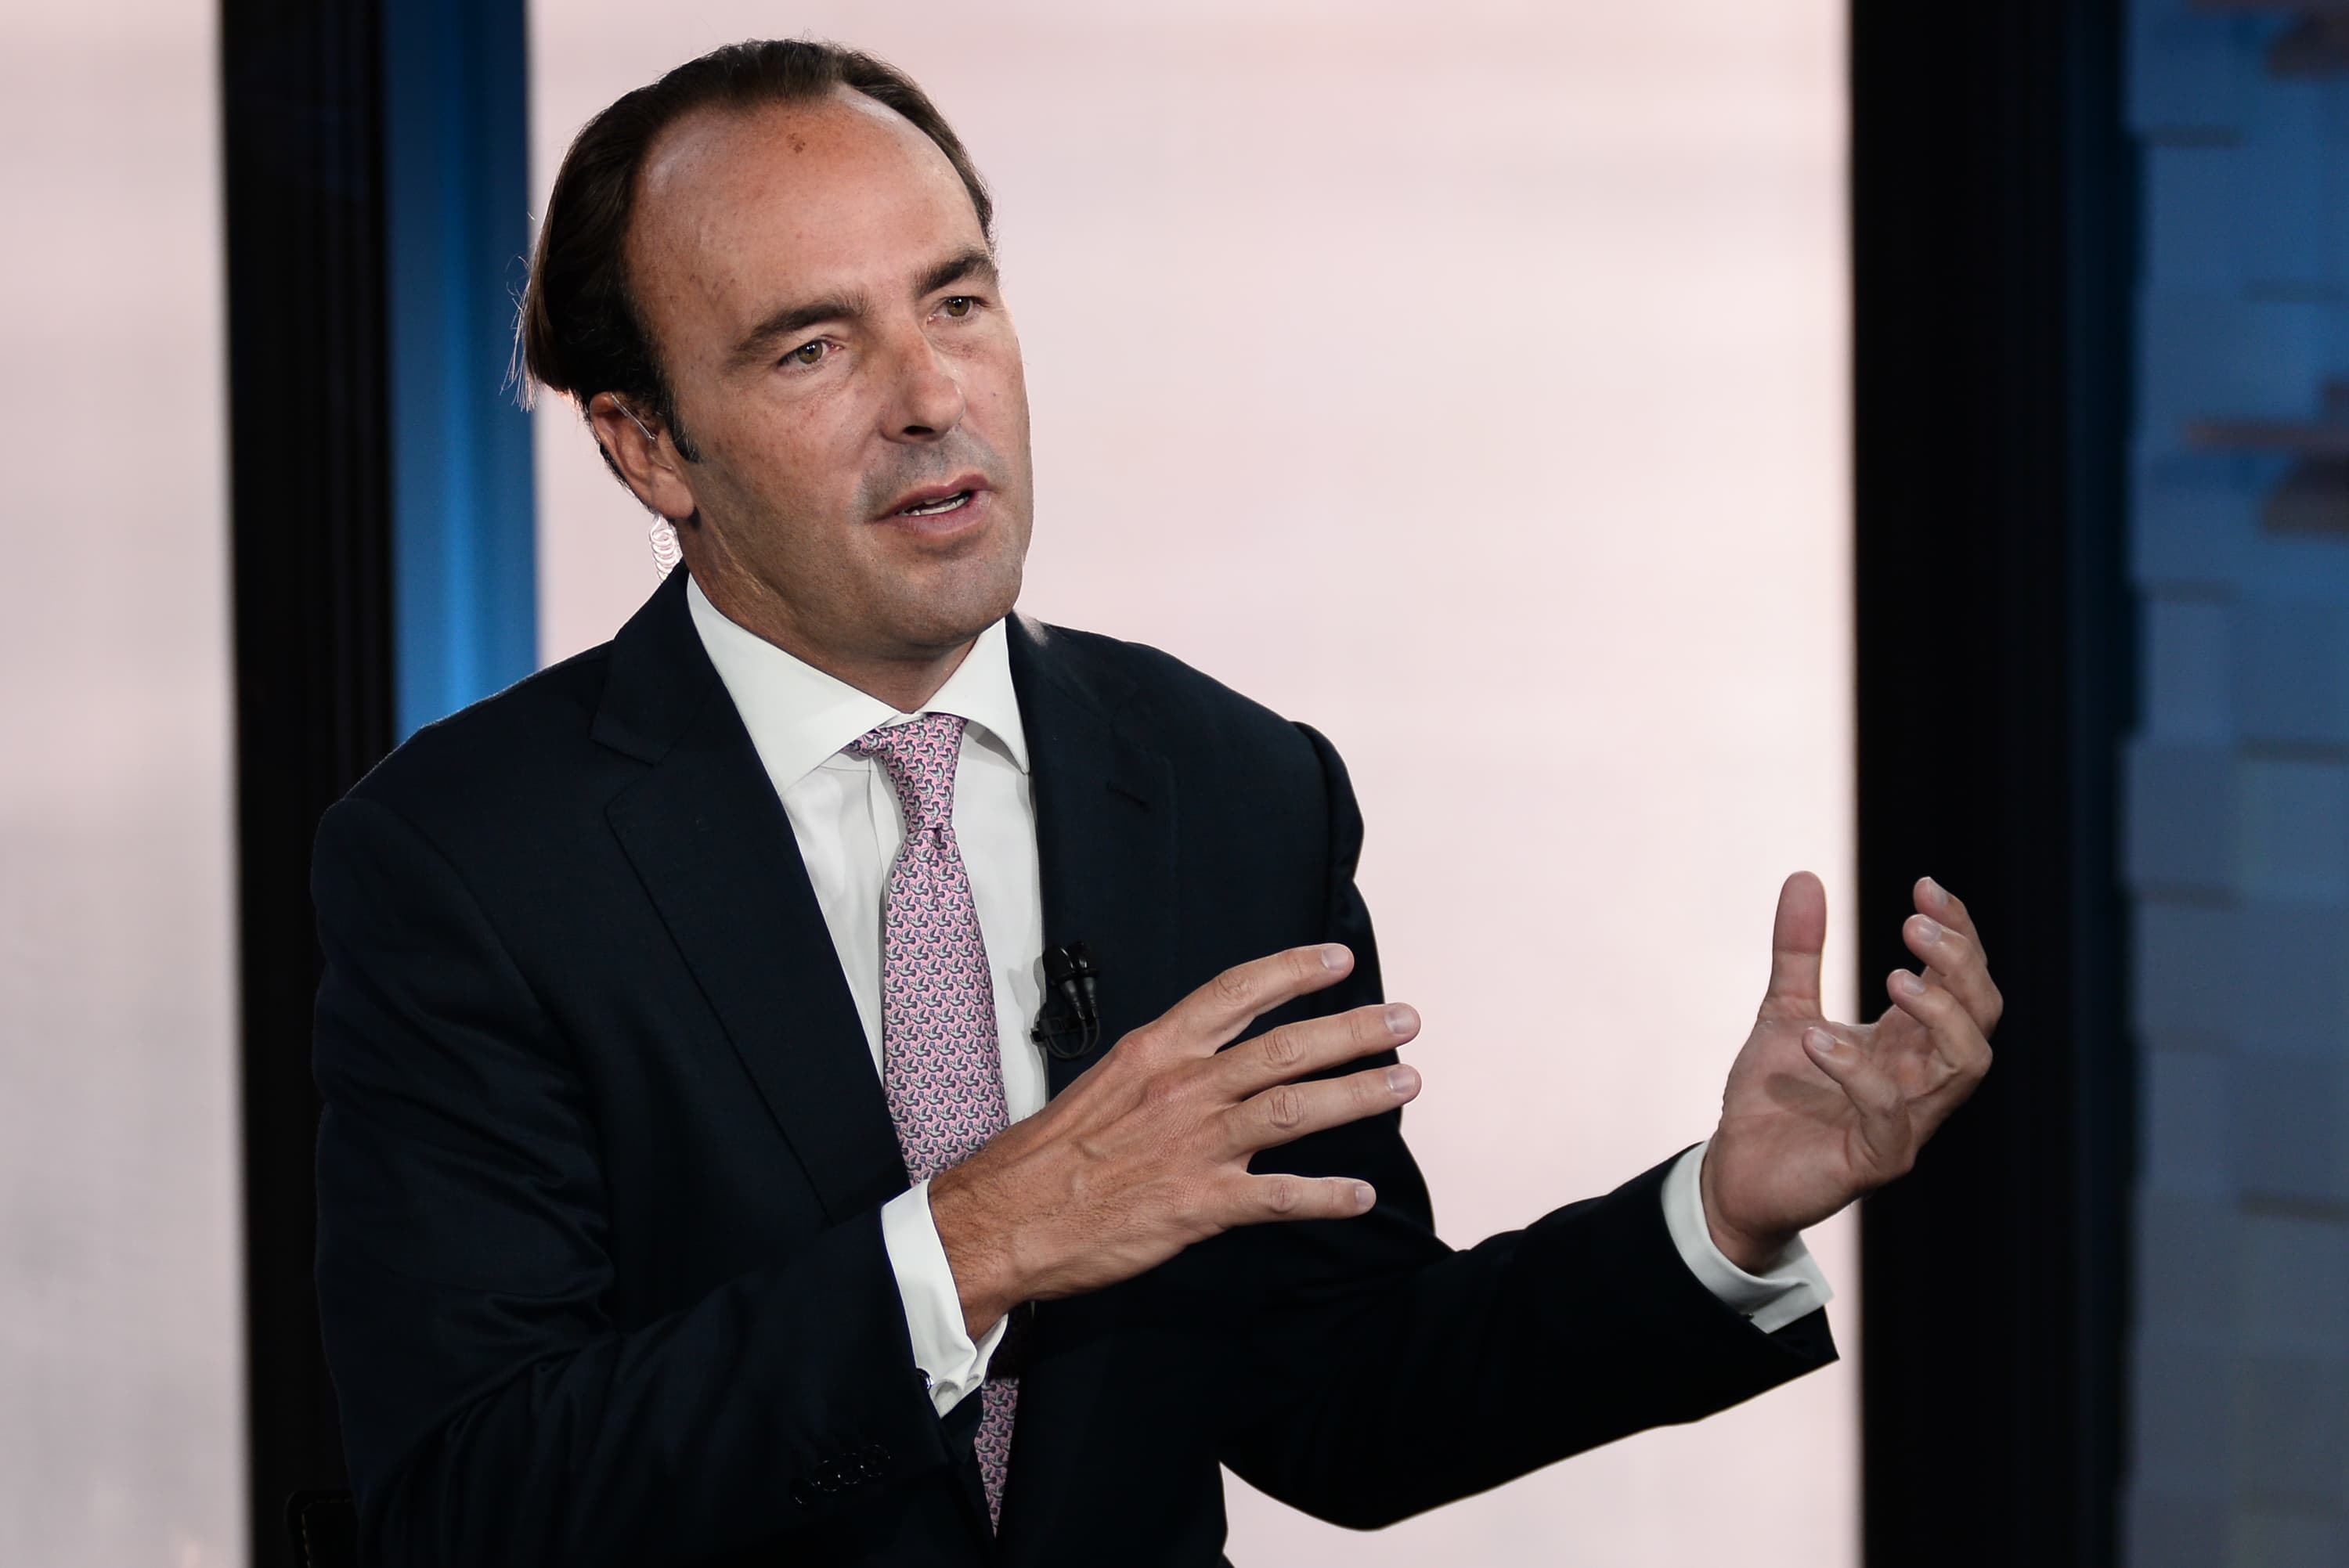 Hedge fund manager Kyle Bass says the US has more leverage over China than ever before